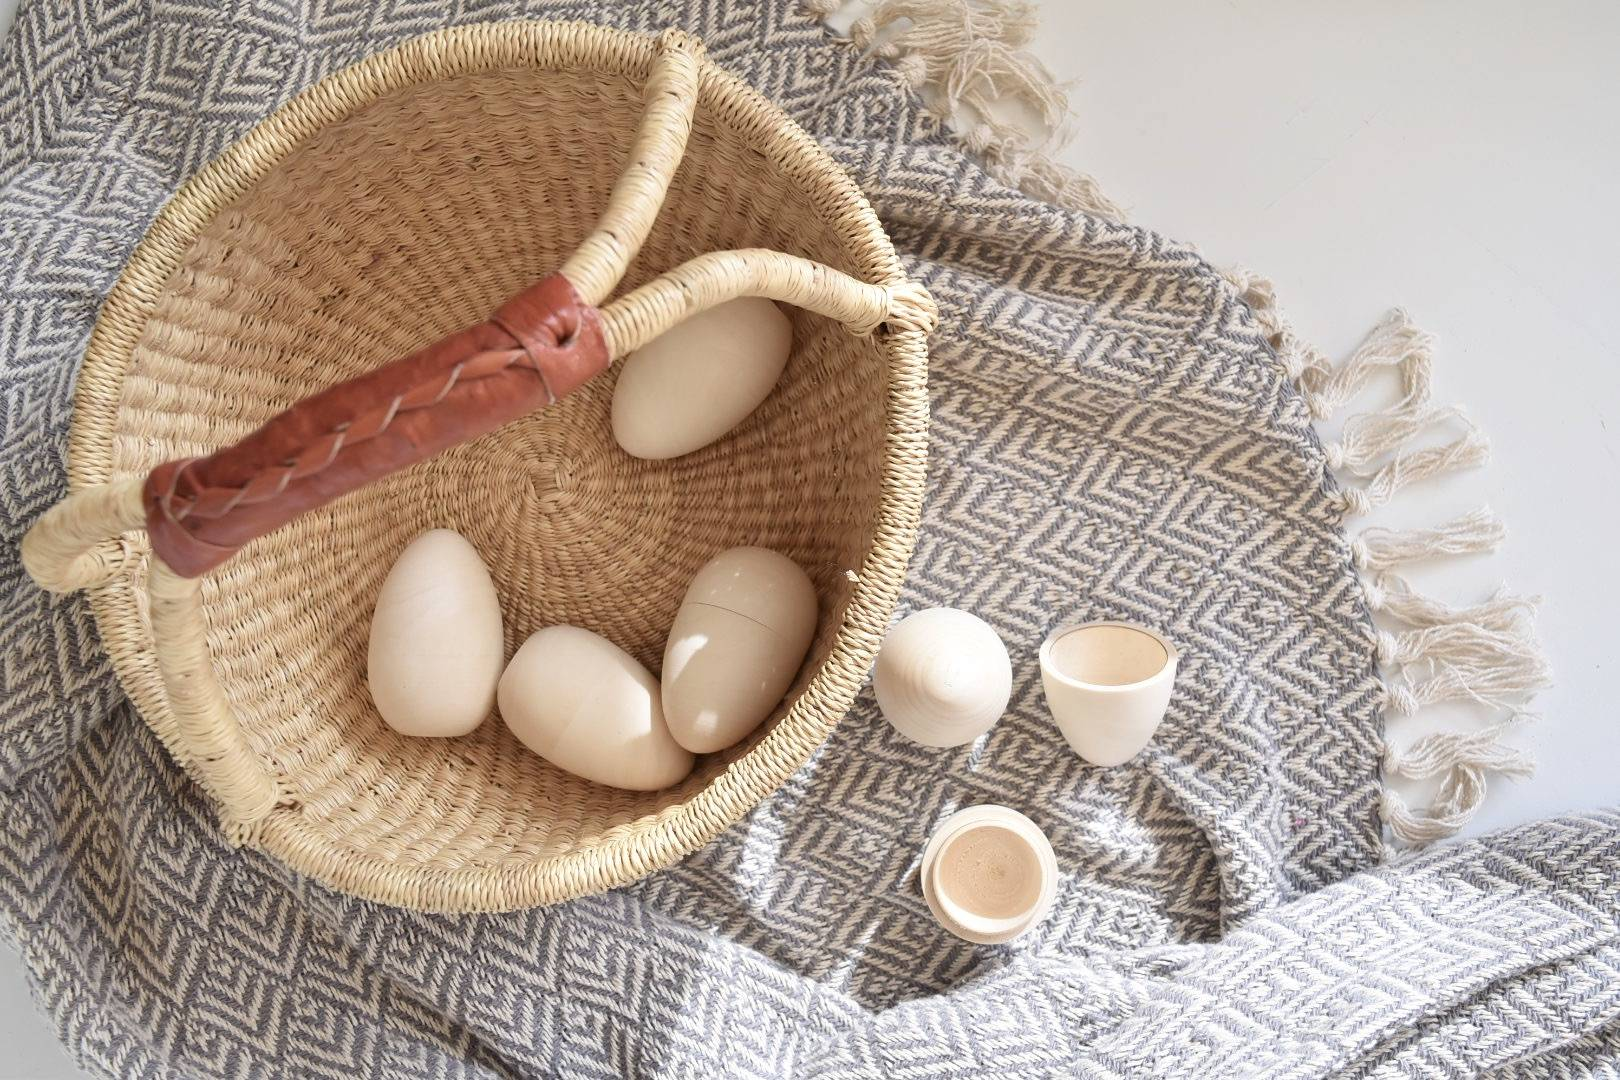 hallow wooden eggs for easter hunt with basket